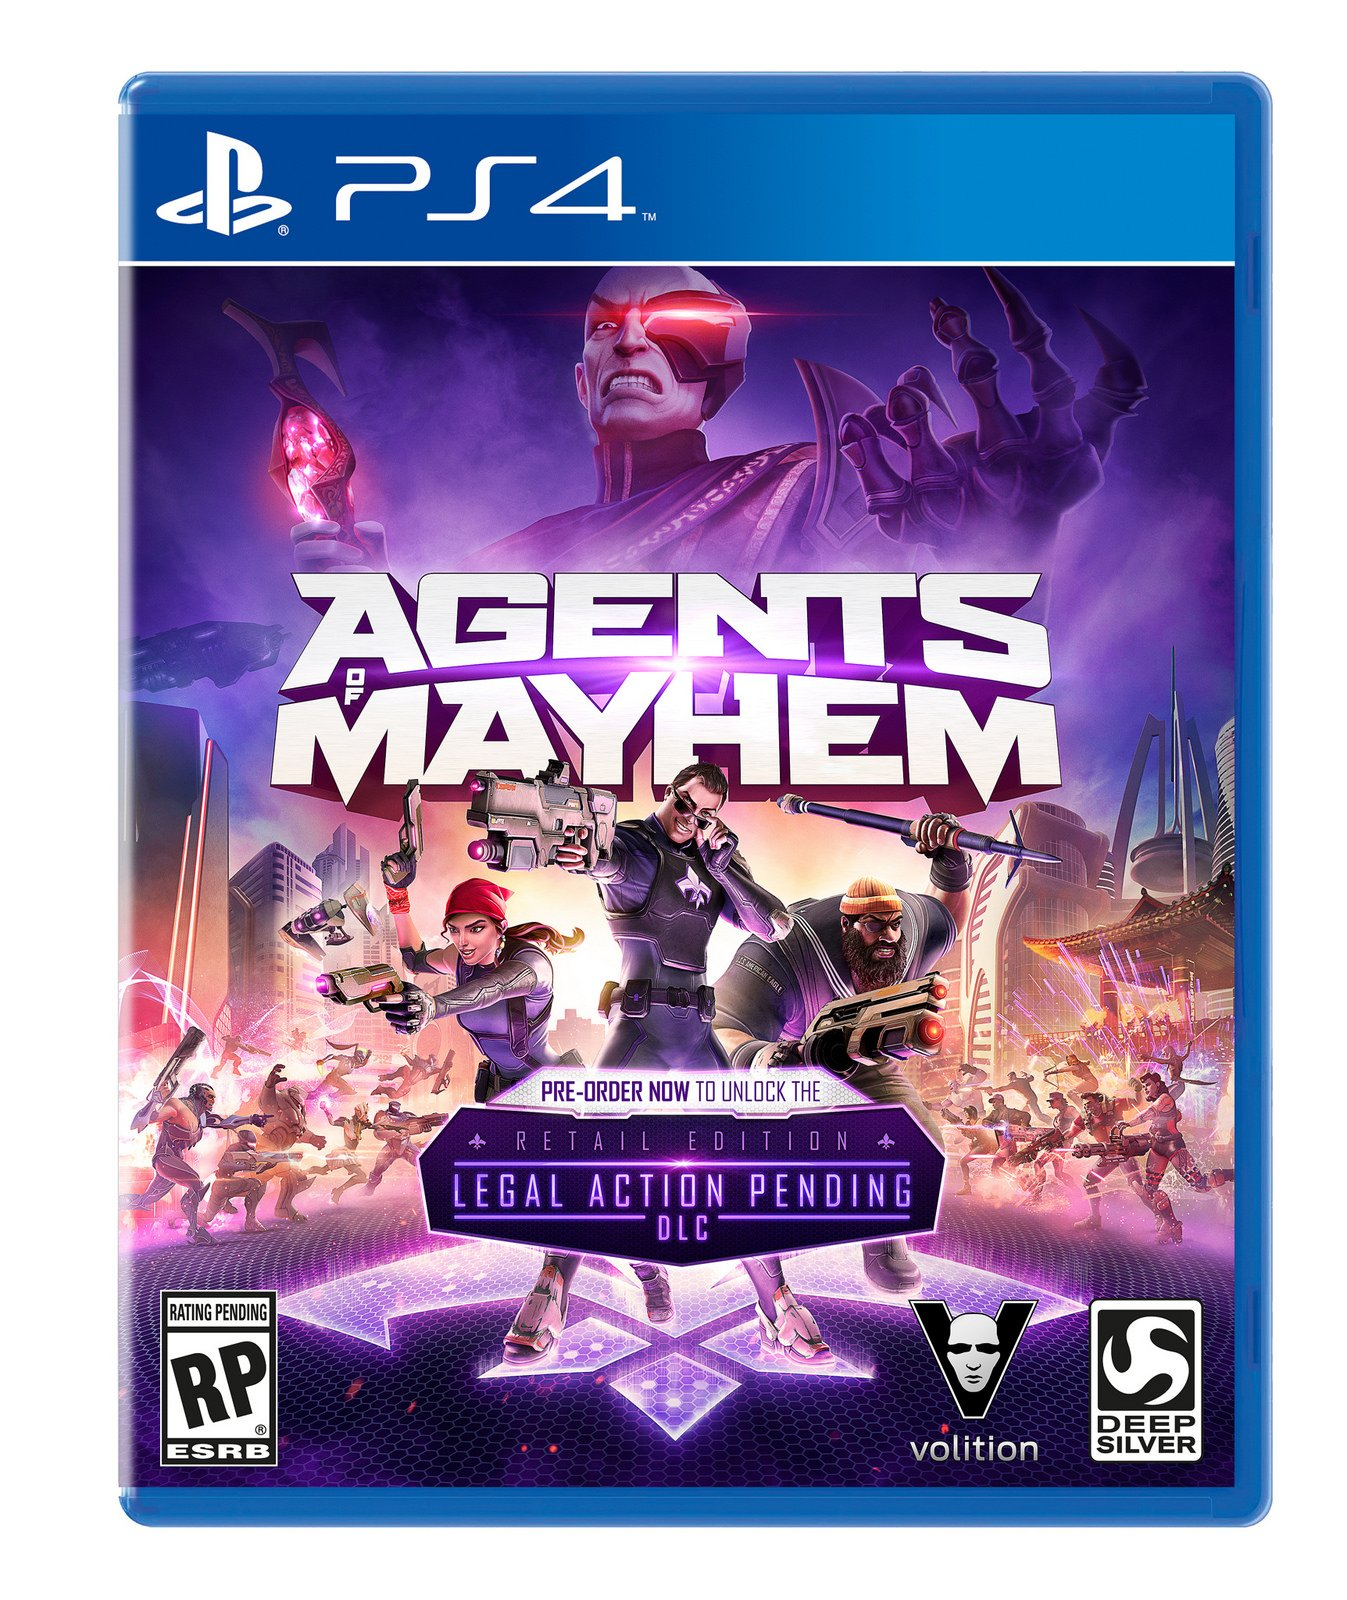 Box art - Agents of Mayhem